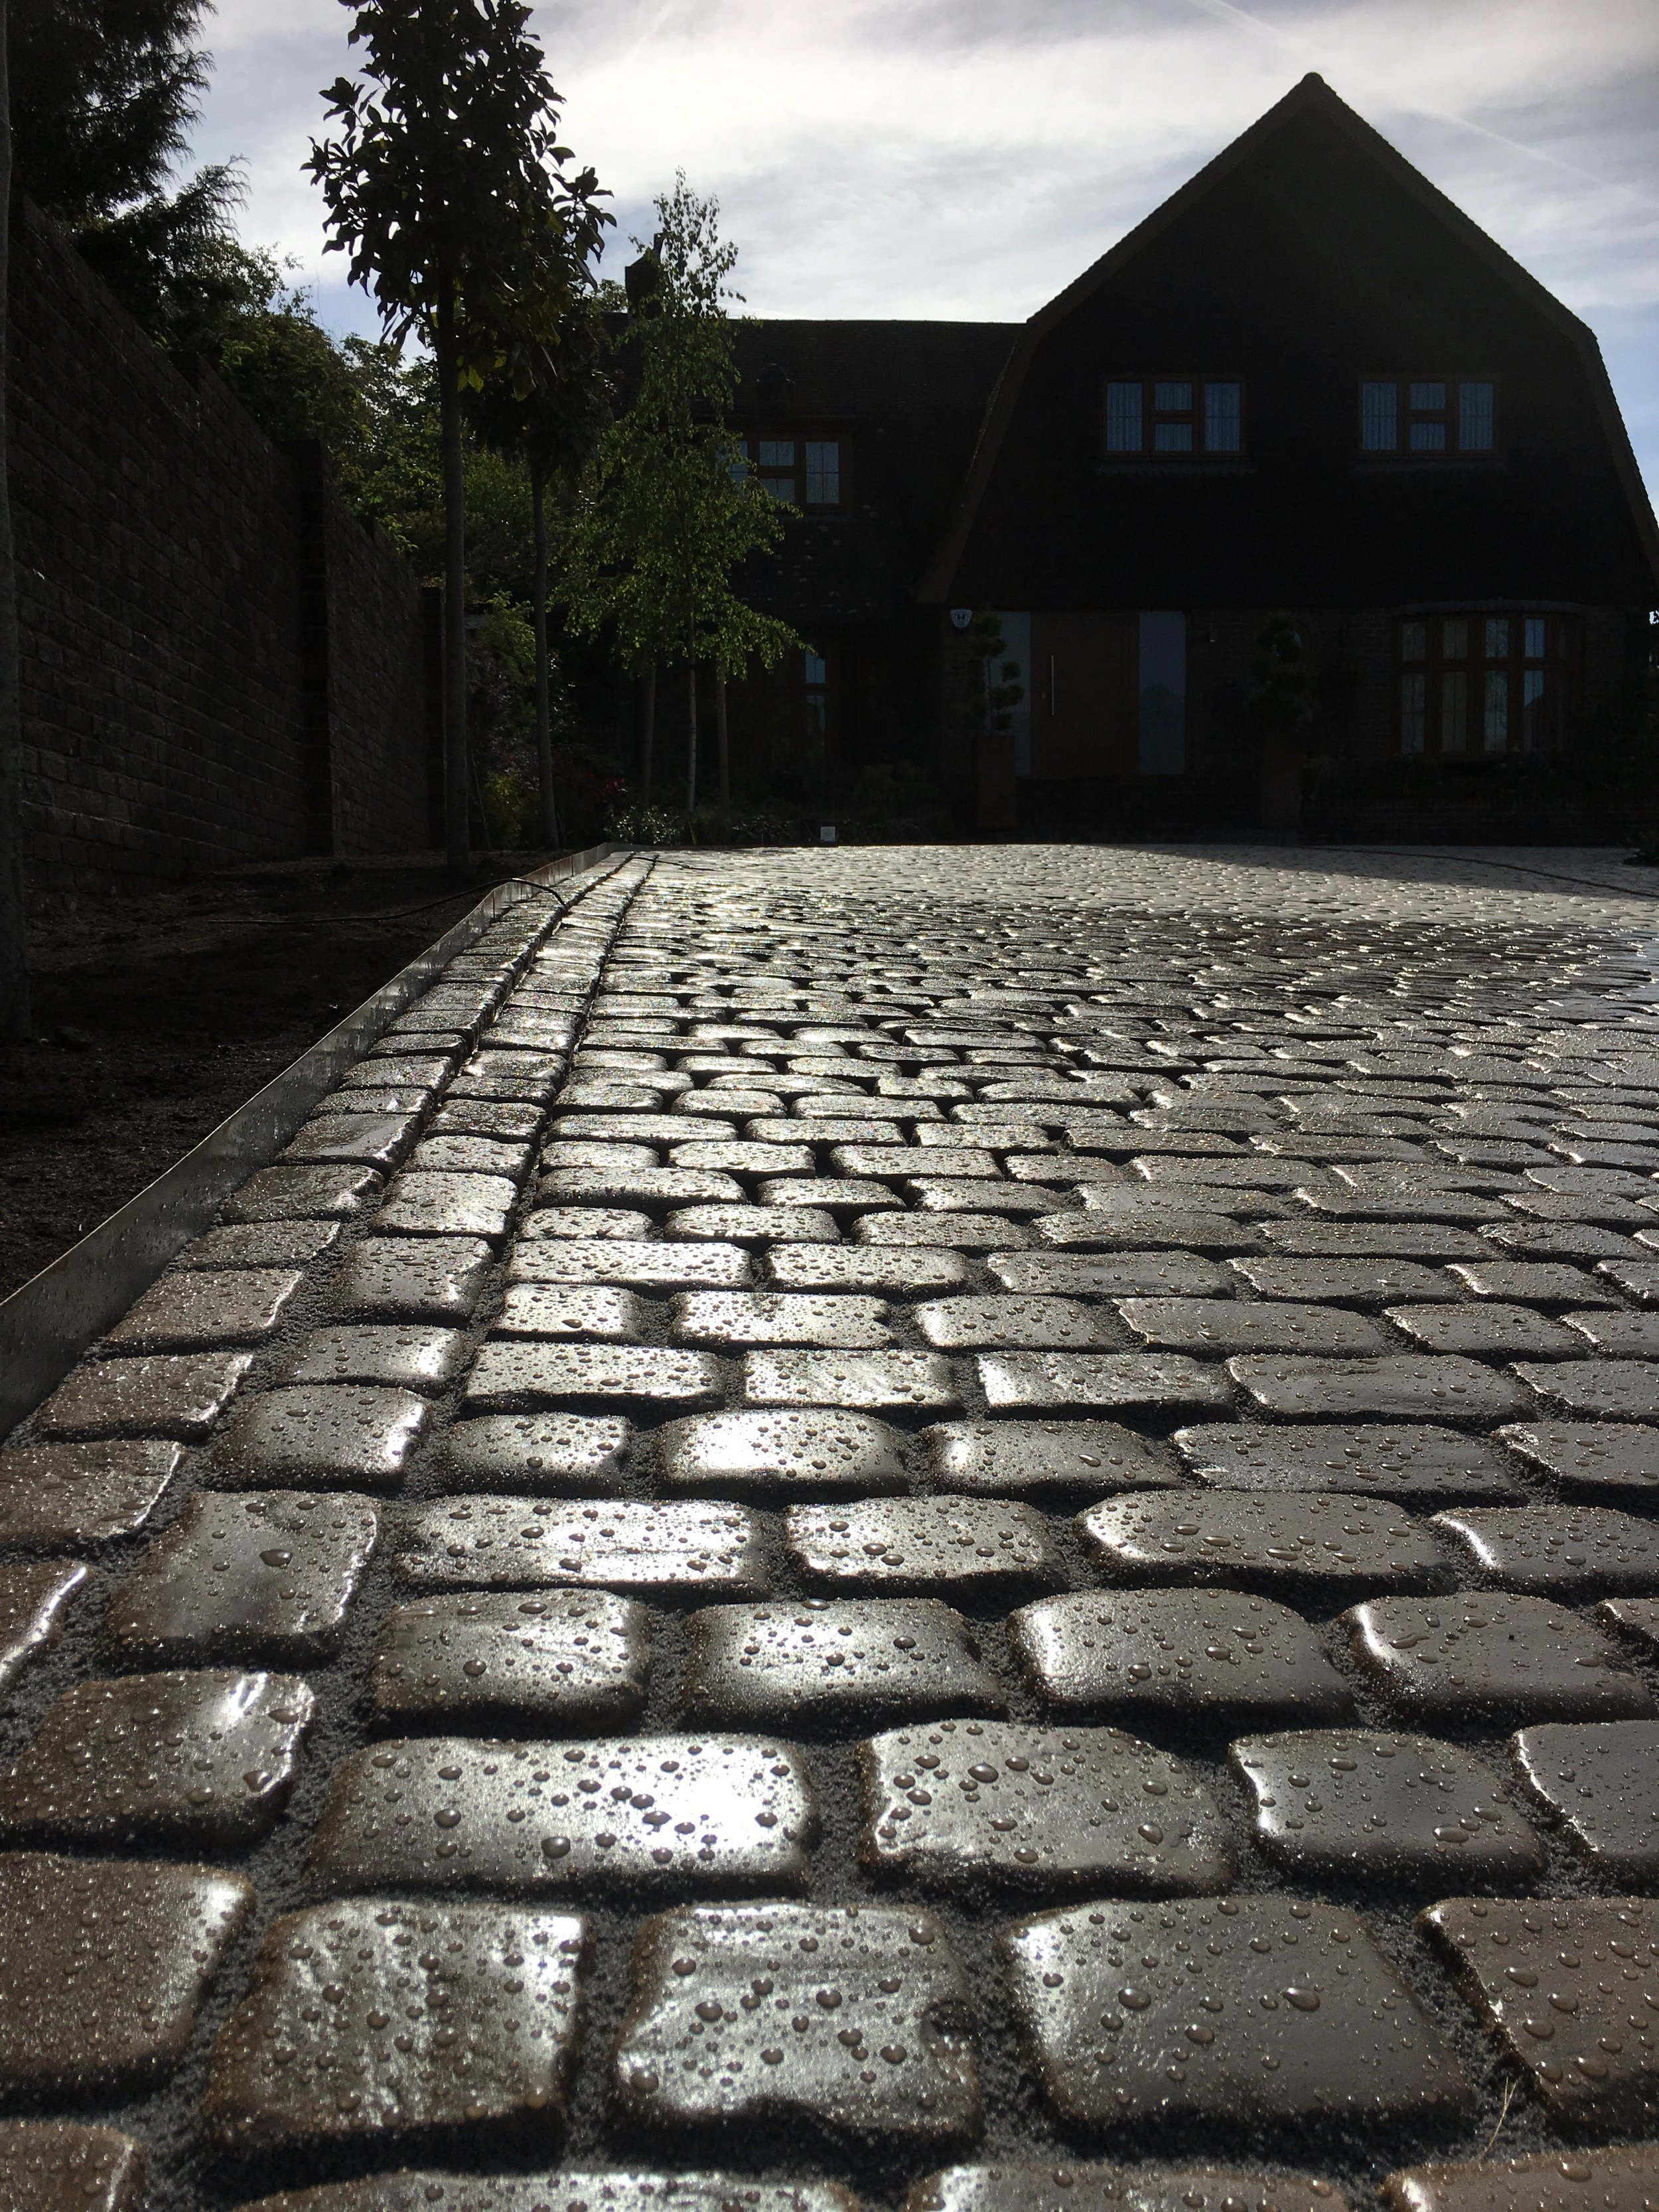 We used the Marshalls drivesys block to create this driveway